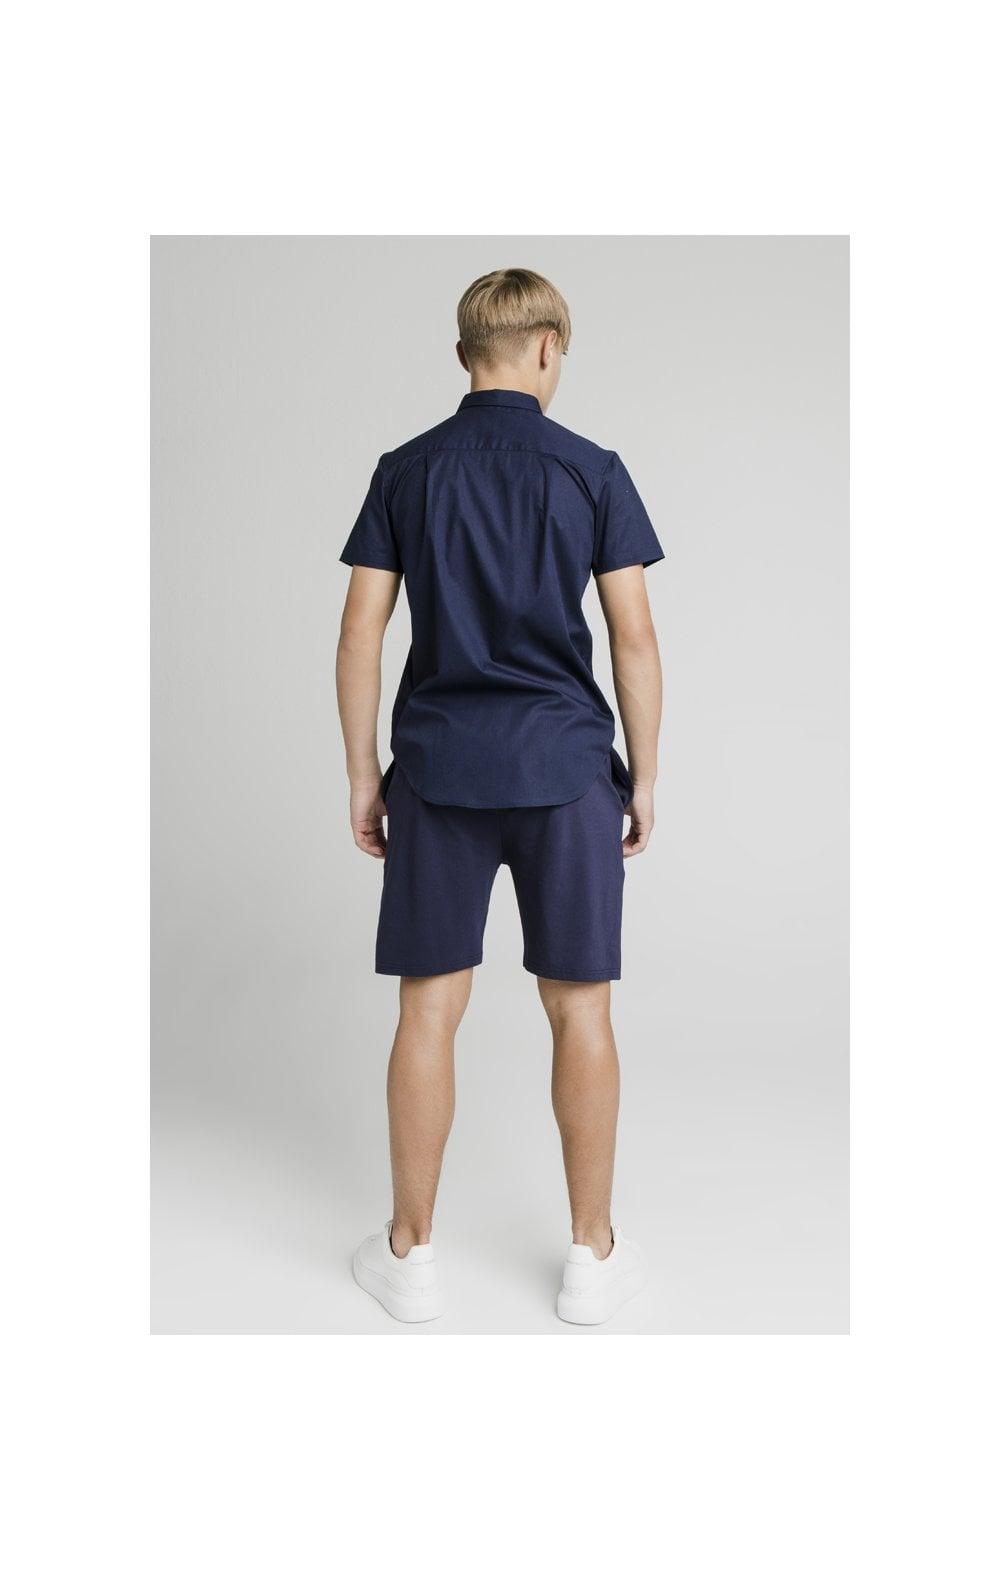 Illusive London Side Tape Jersey Shorts - Navy (7)